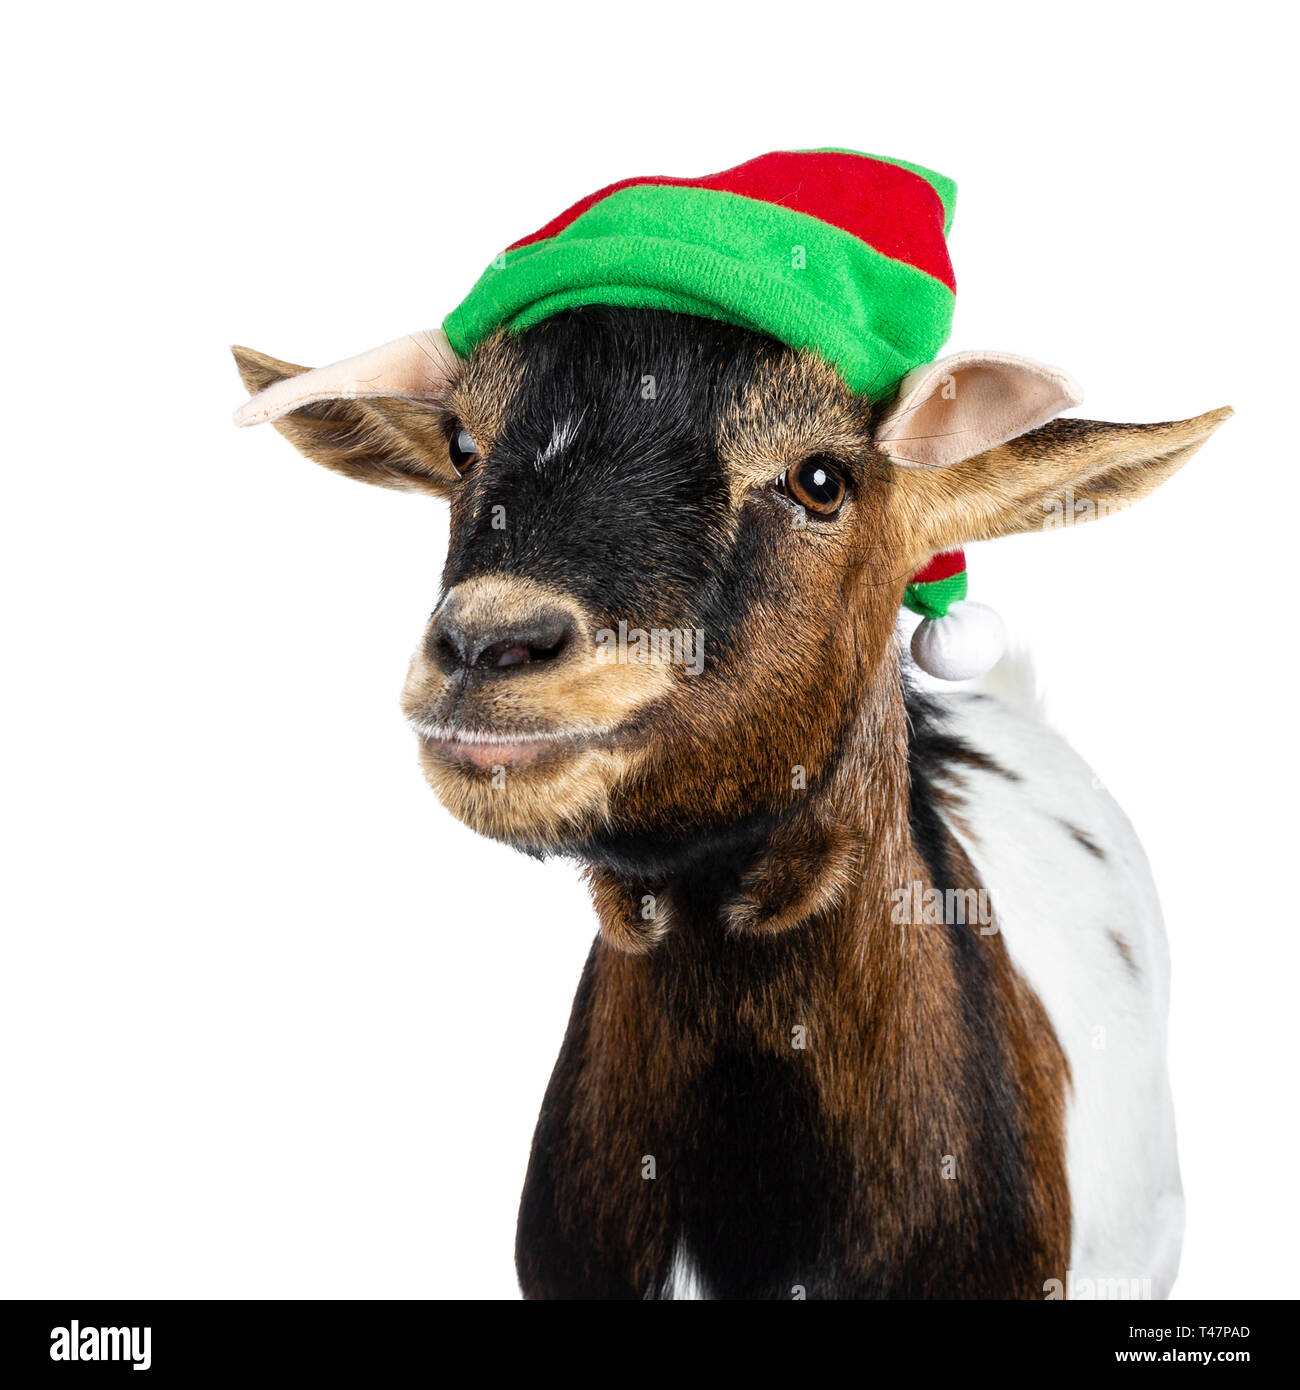 Head shot of funny brown pygmy goat wearing a red and green elf hat. Looking straight at camera side ways. Isolated on white background. Stock Photo